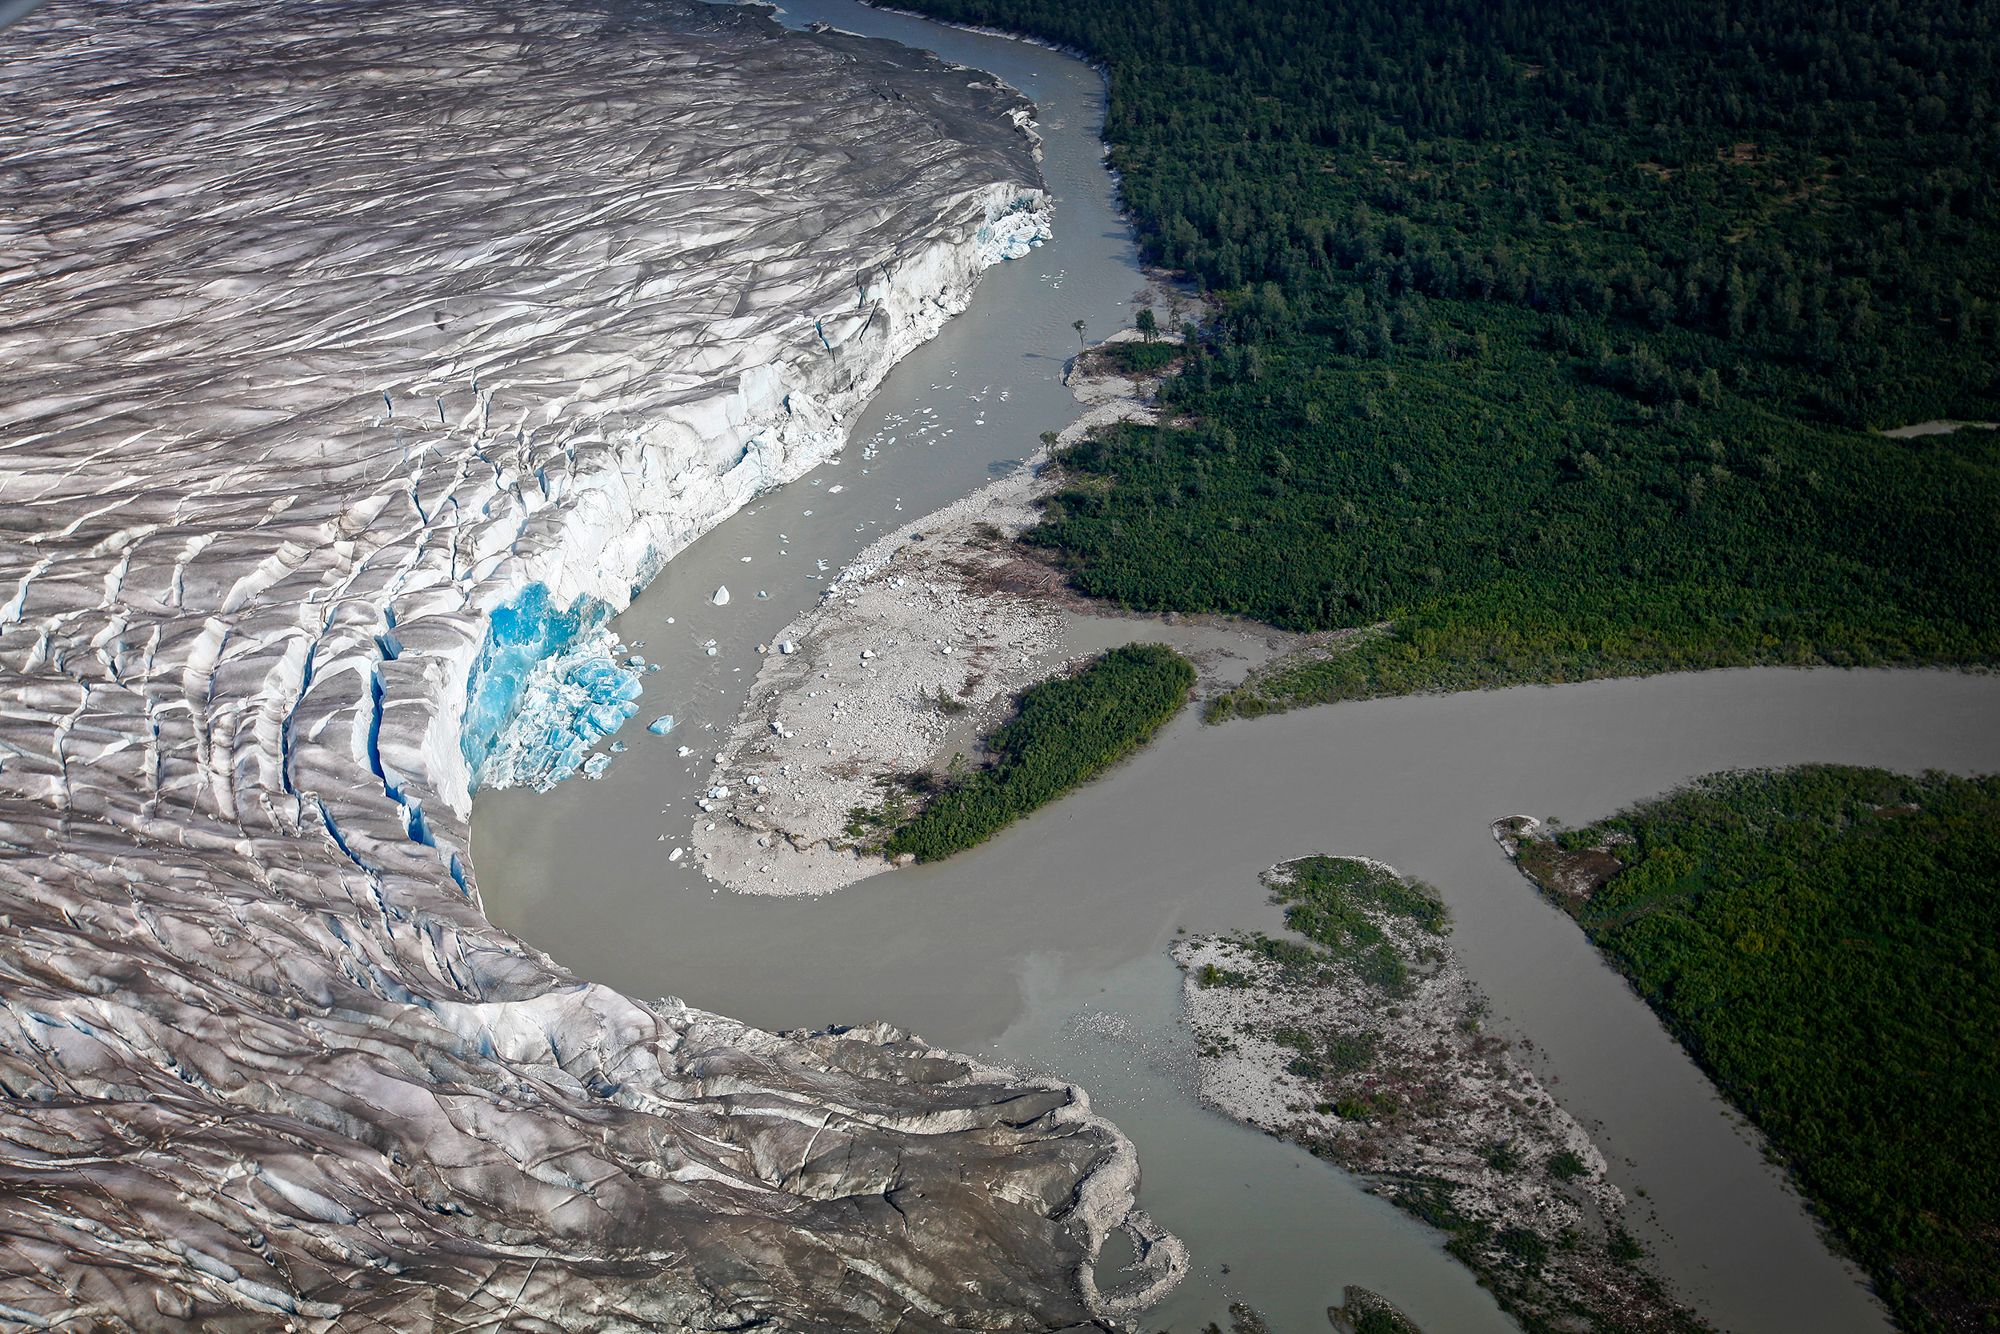 Iridescent blue ice is revealed as a small portion of the Taku Glacier, near the glacier's snout, calves into the grey meltwater below (photo: Earl Harper).